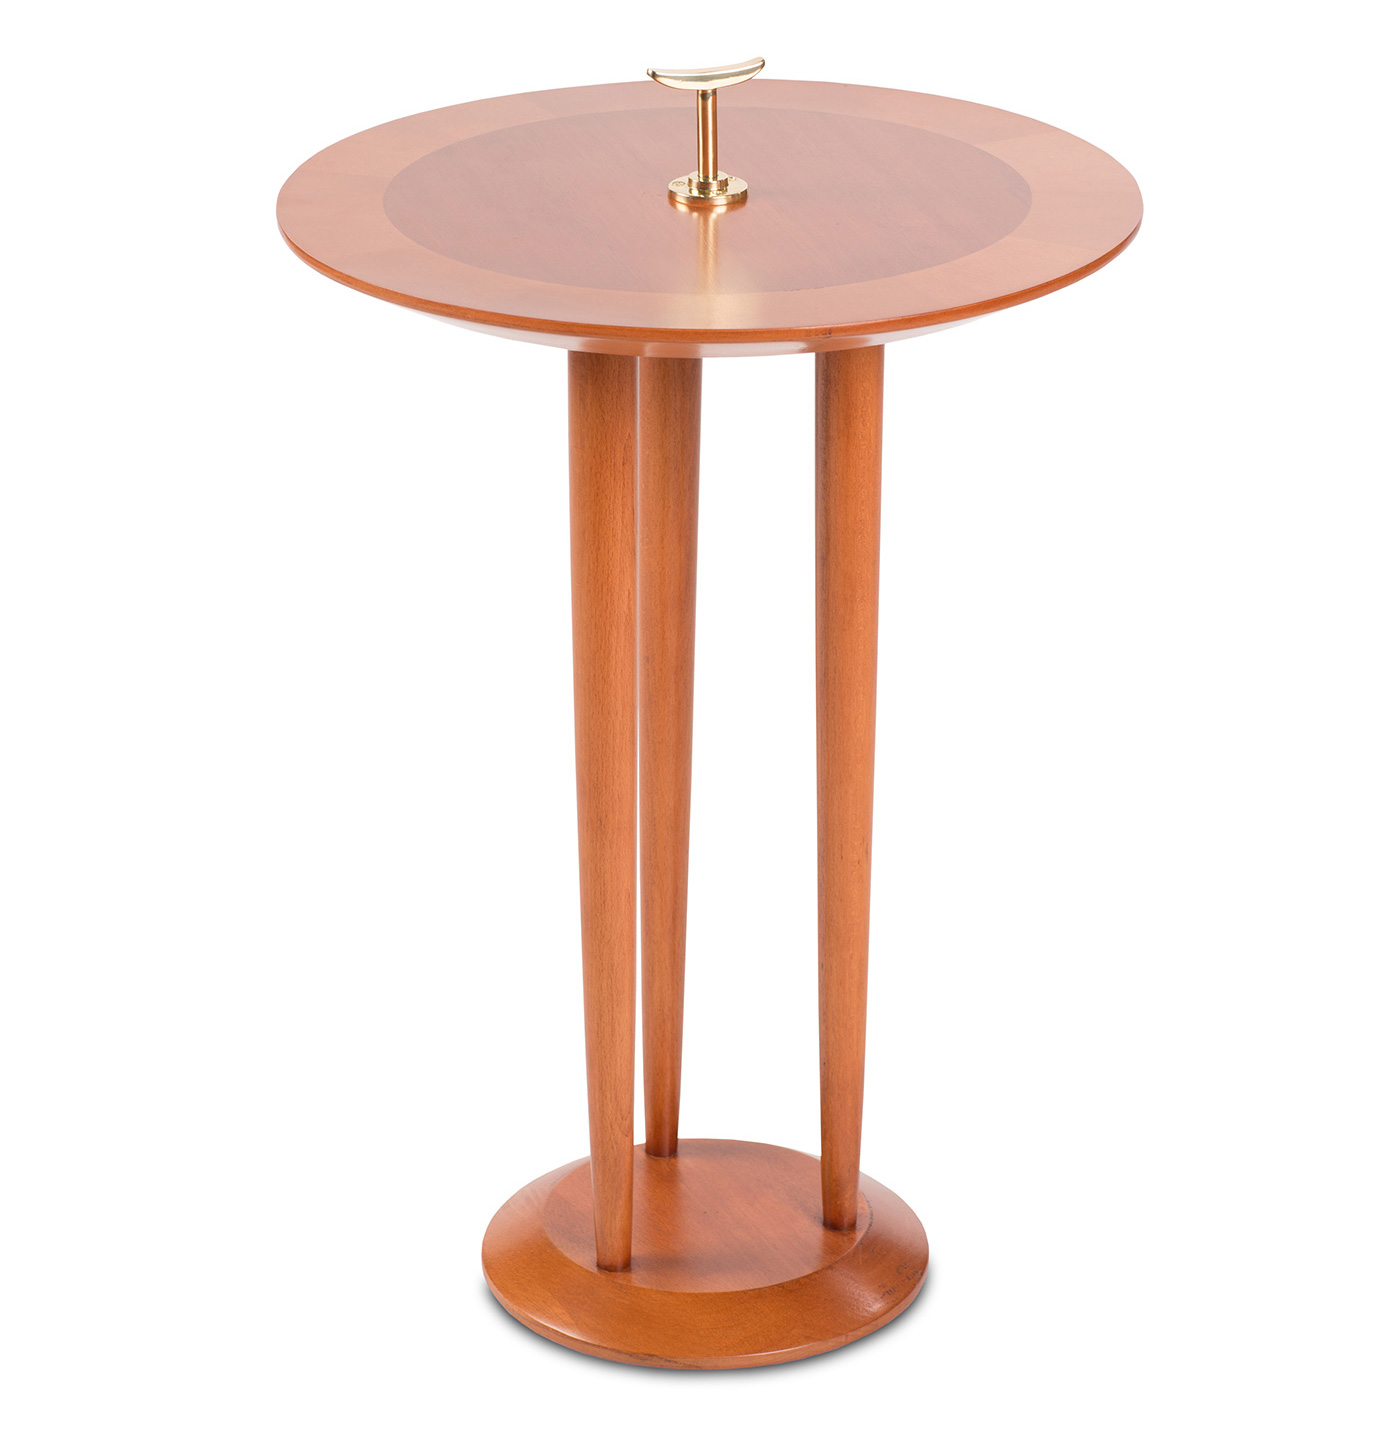 High-end side table designed by Boston interior designer